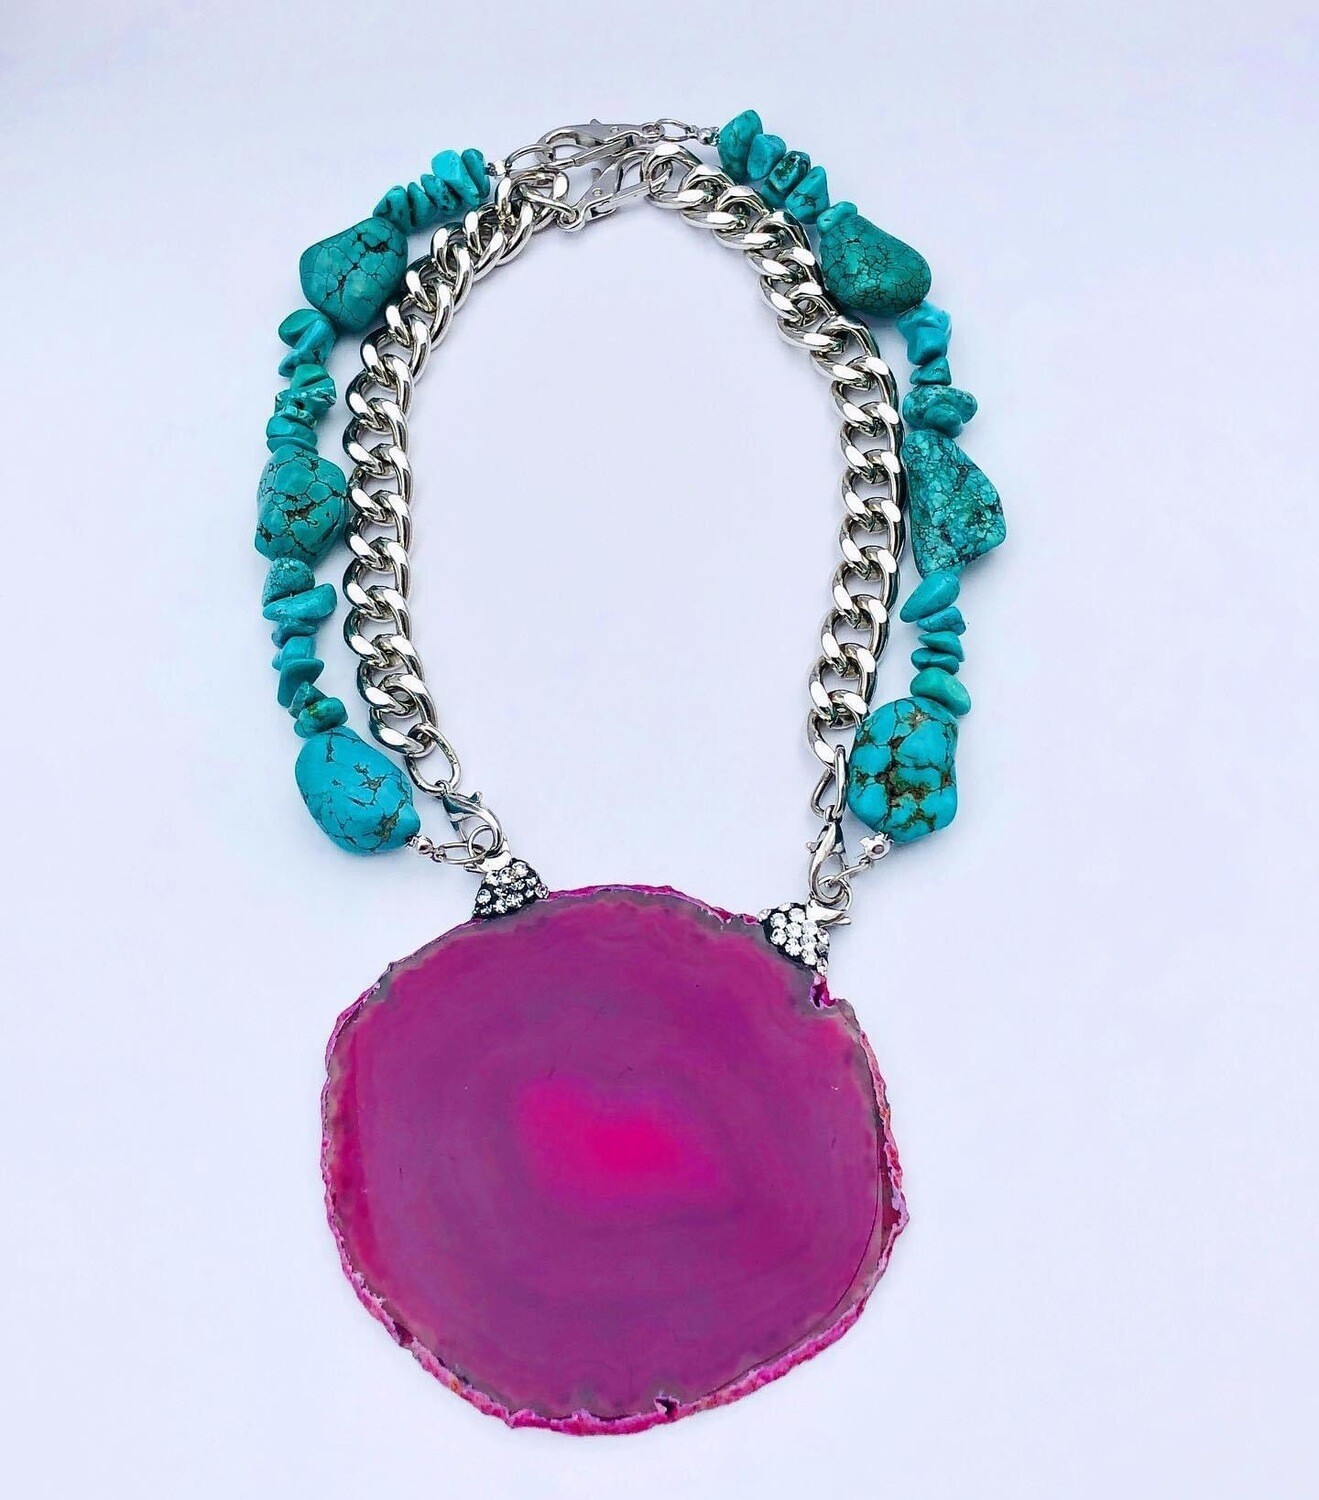 Handmade Pink Lace Agate Pendent on interchangeable Turquoise Necklace & Metal Chain.